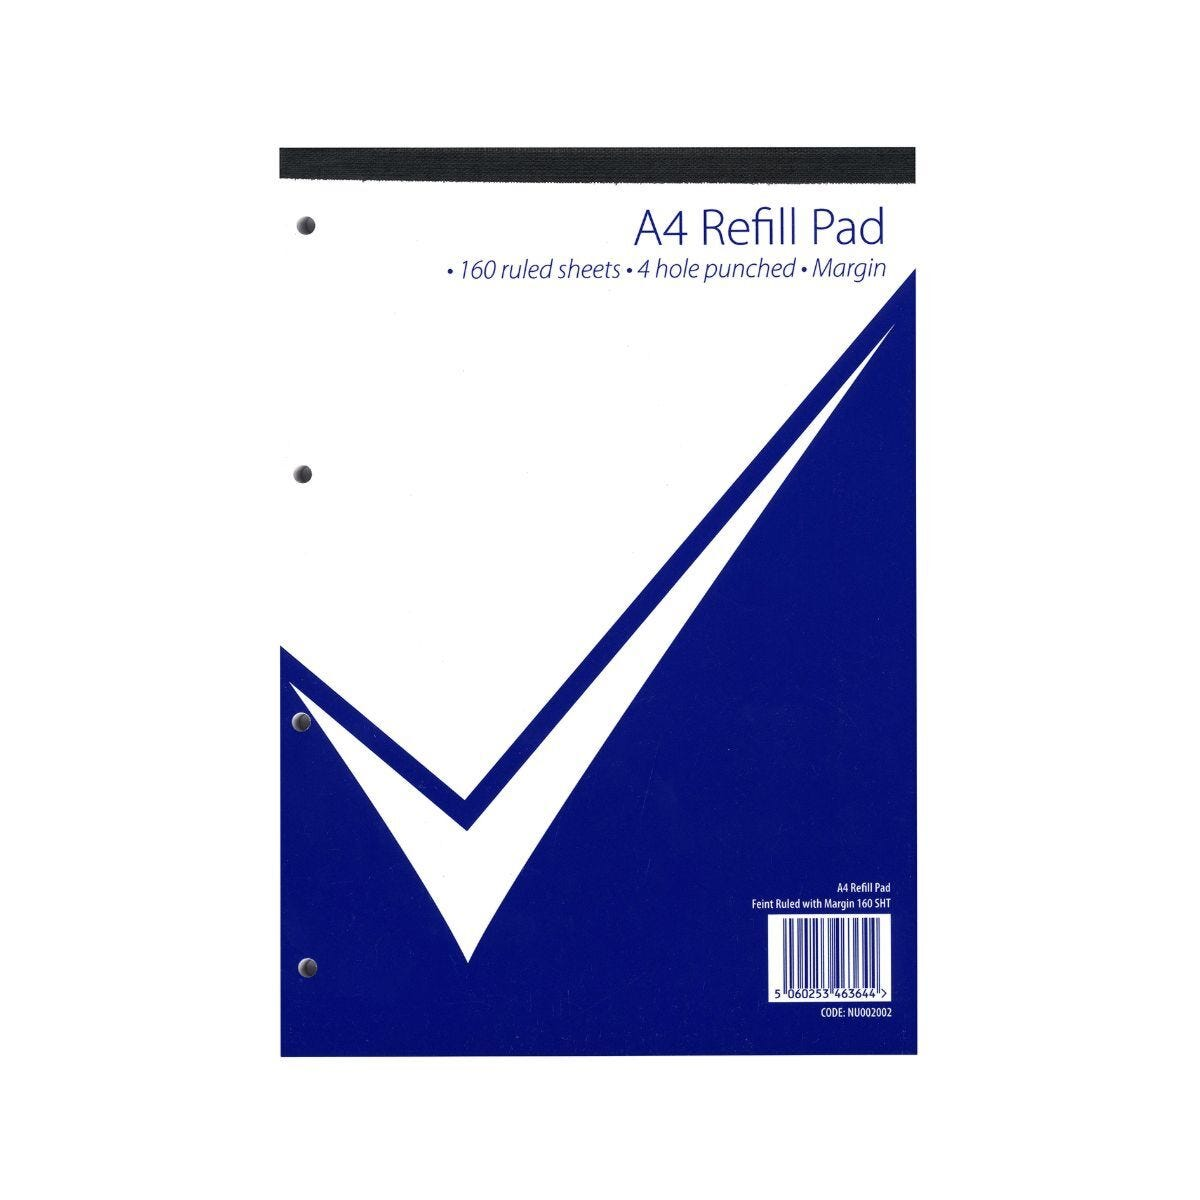 Nu Office Refill Pad A4 Ruled With Margin 160 Pages